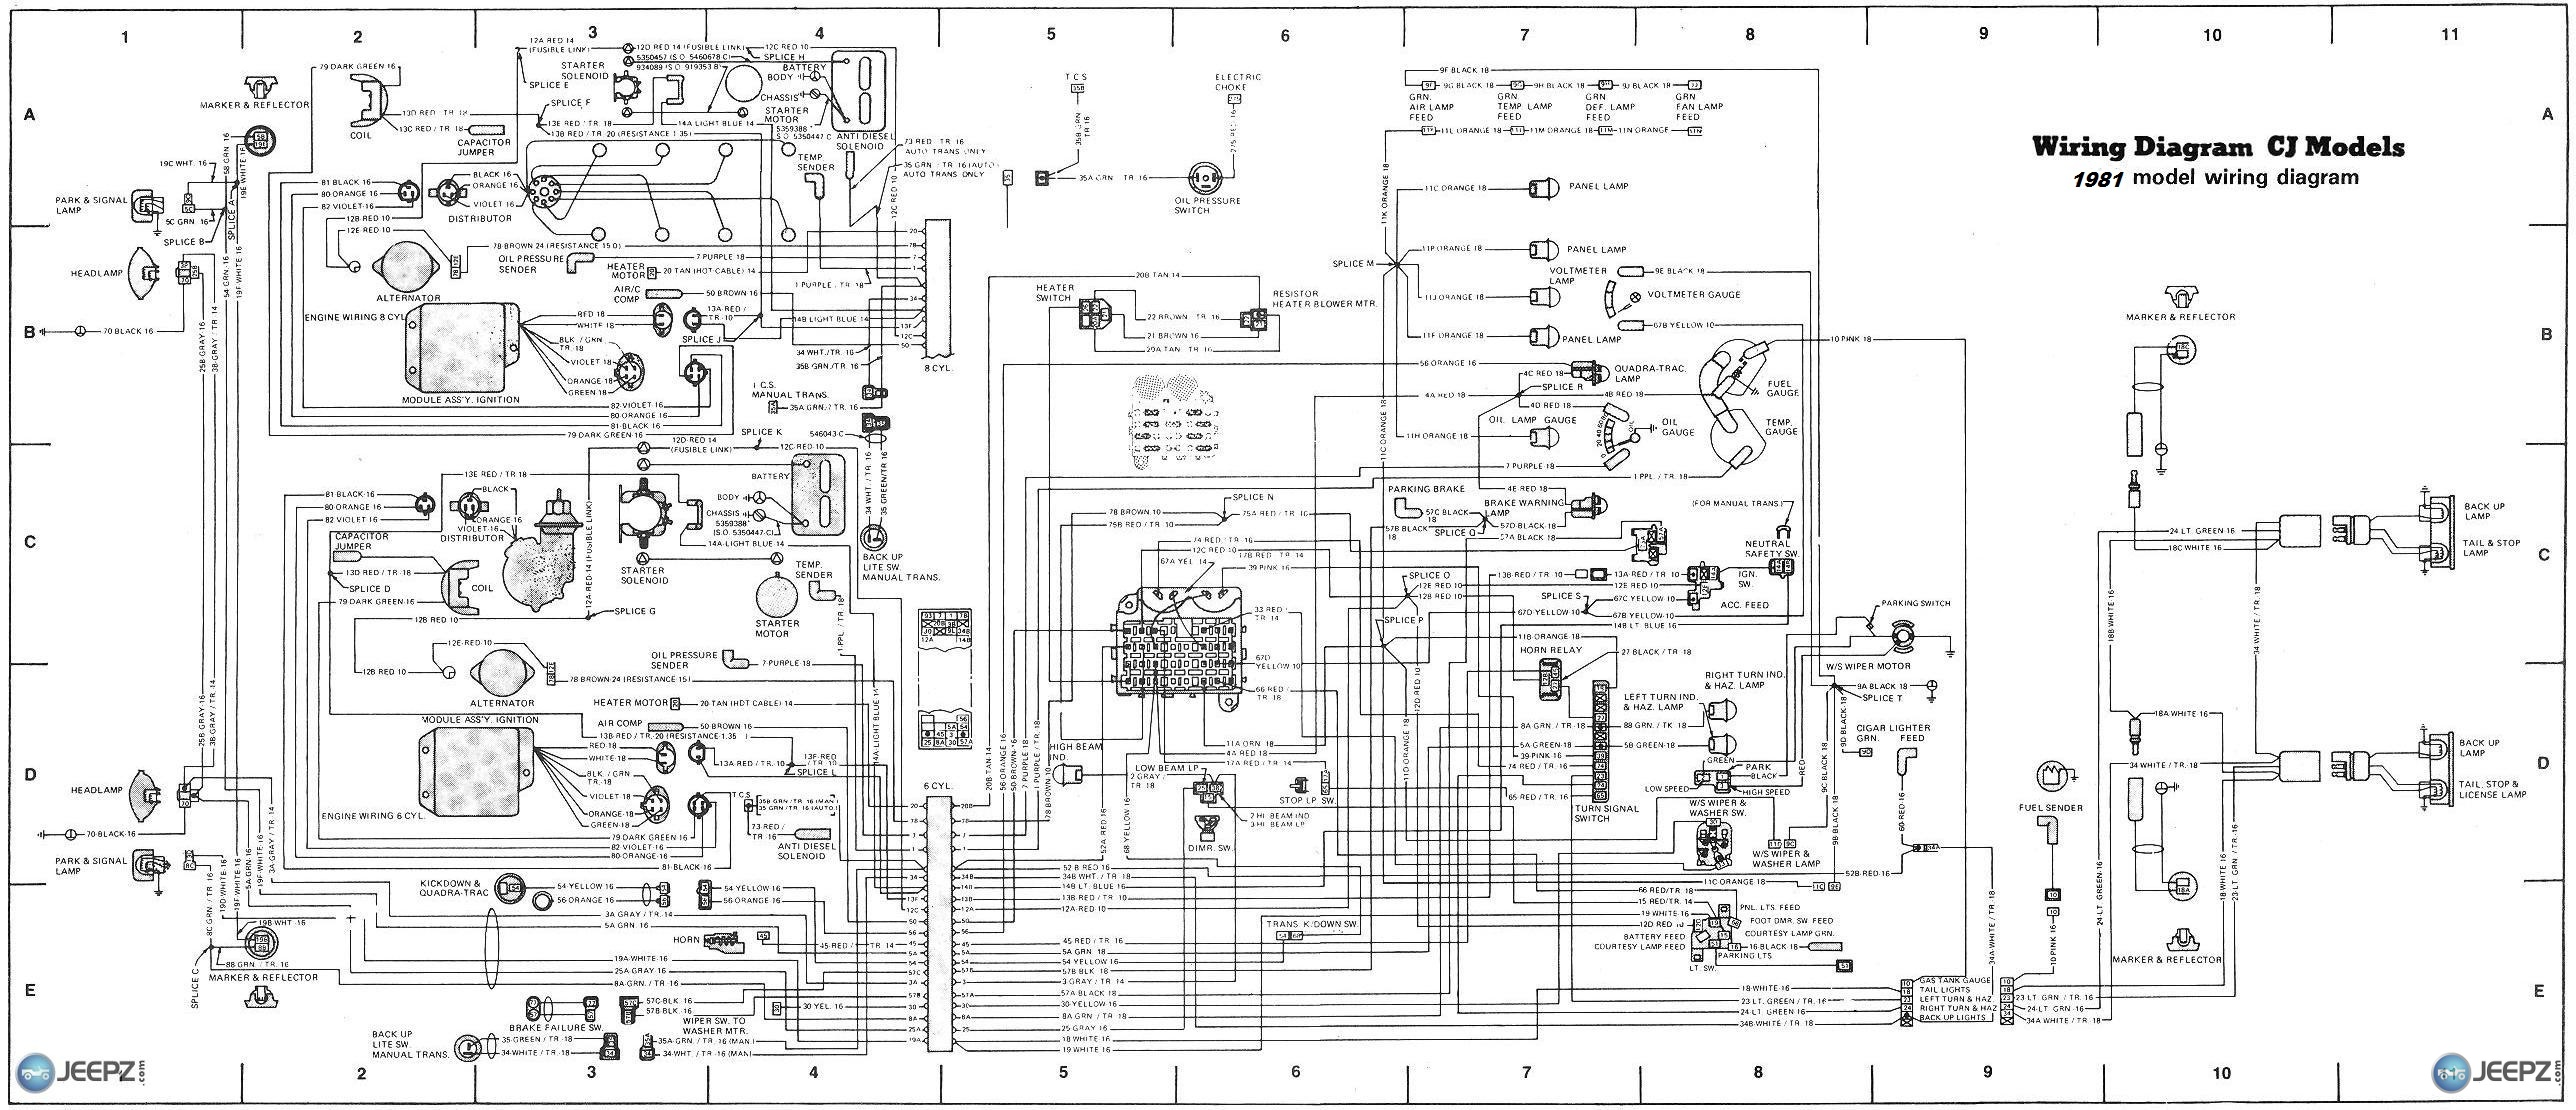 1980 Jeep Cj7 Wiring Diagram Auto Electrical Wiring Diagram 1950 F100 Wiring  Diagram 1980 F100 Wiring Diagram